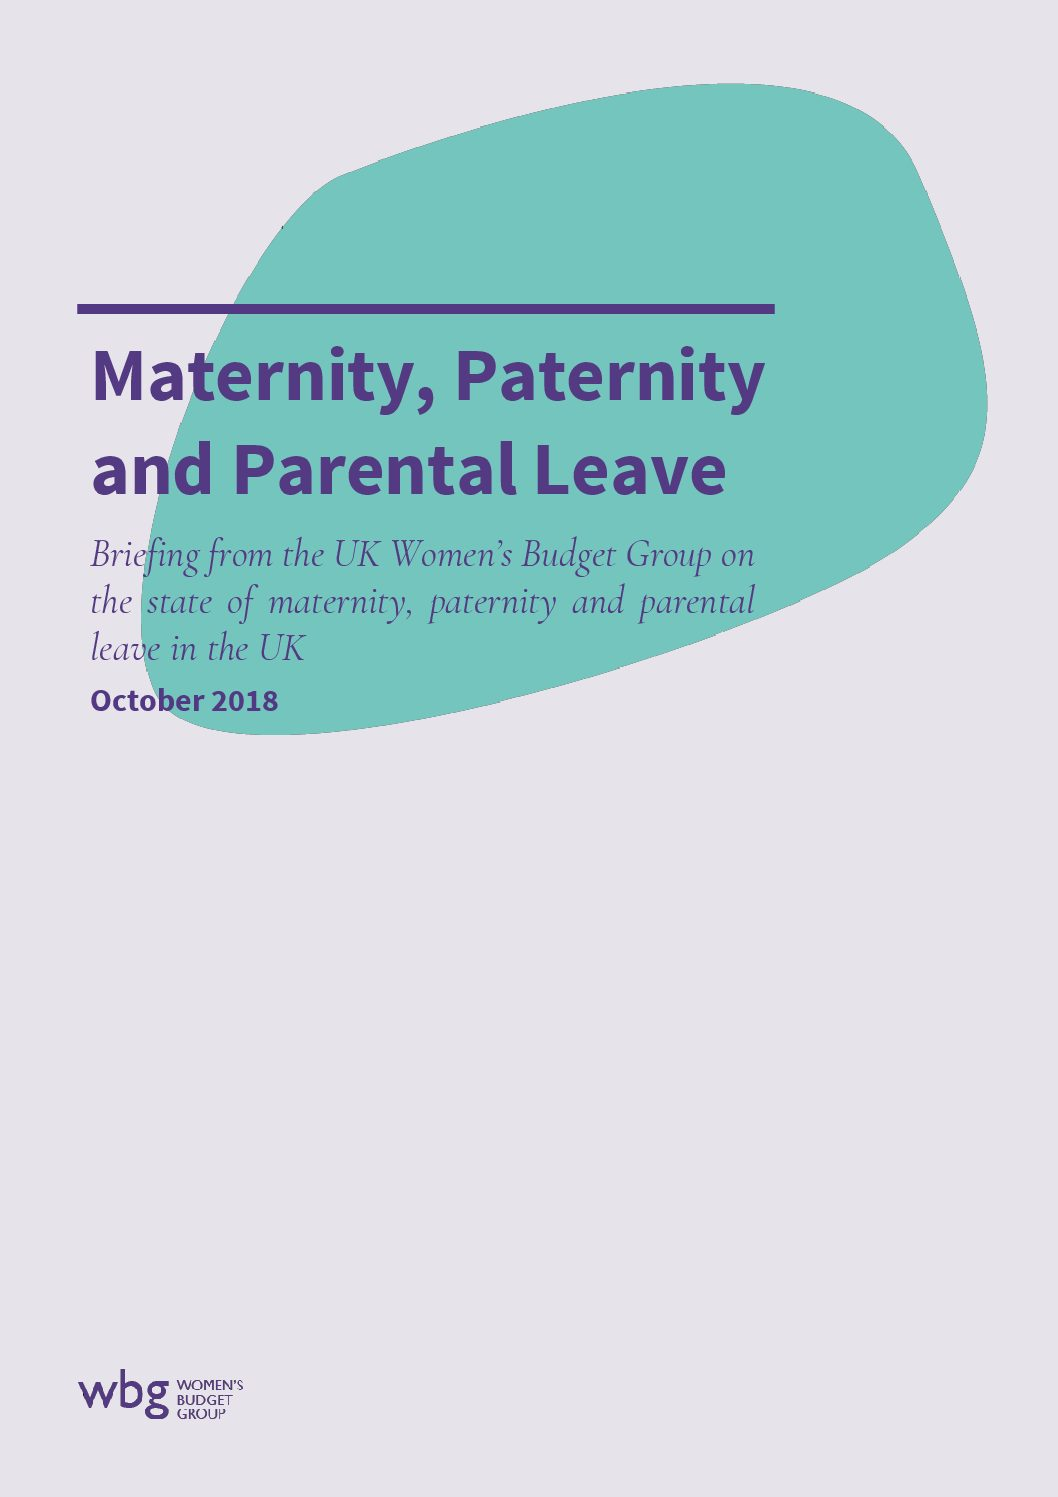 2018 WBG Briefing: Maternity, Paternity and Parental Leave